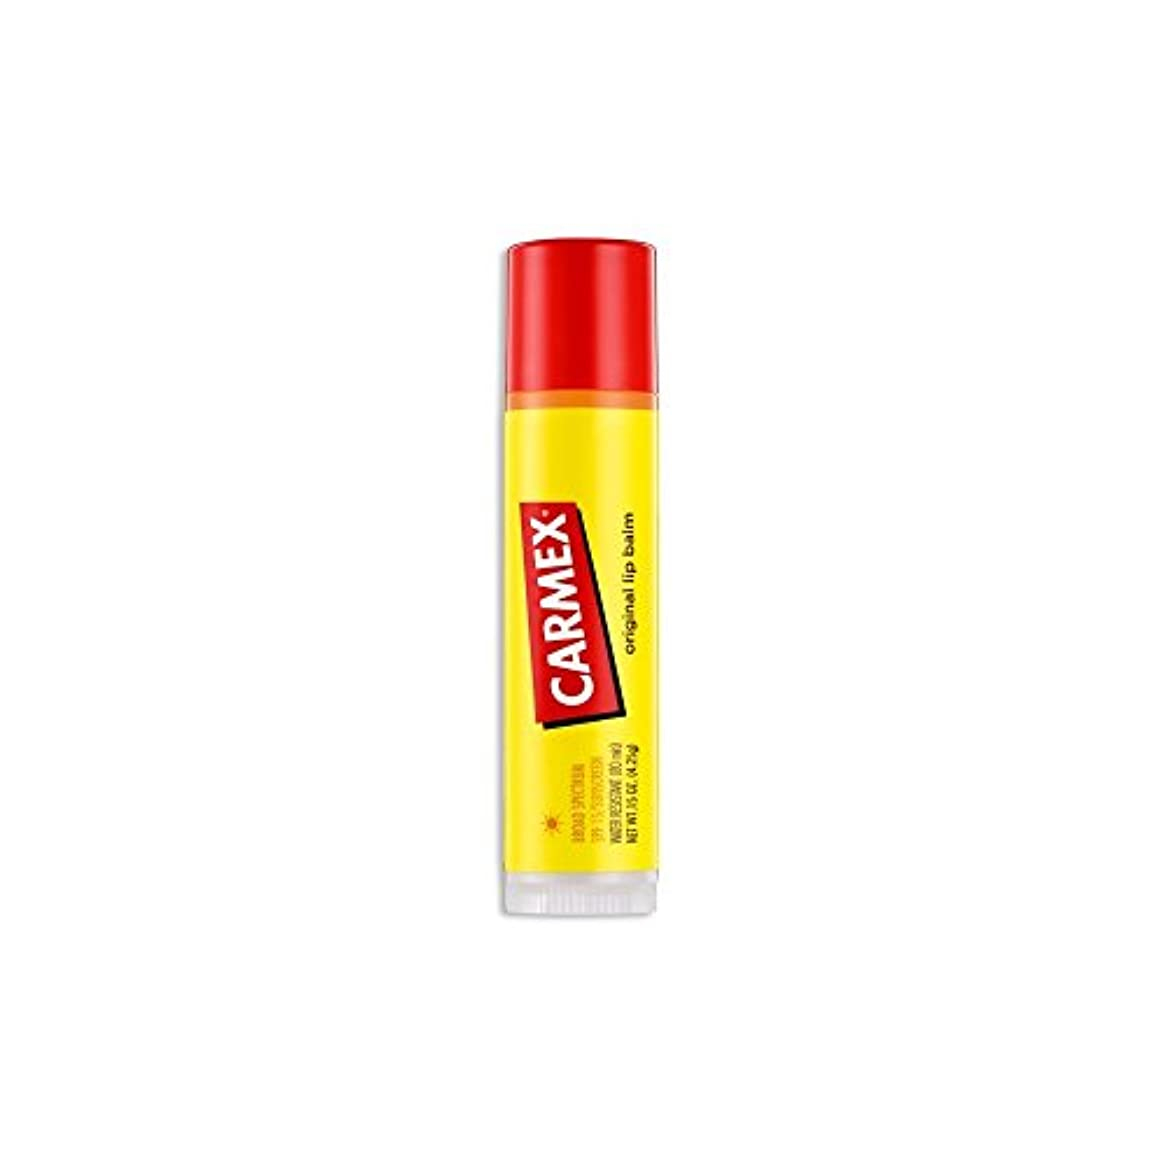 繕うシリング脱獄(3 Pack) CARMEX Original Flavor Sticks Original (並行輸入品)